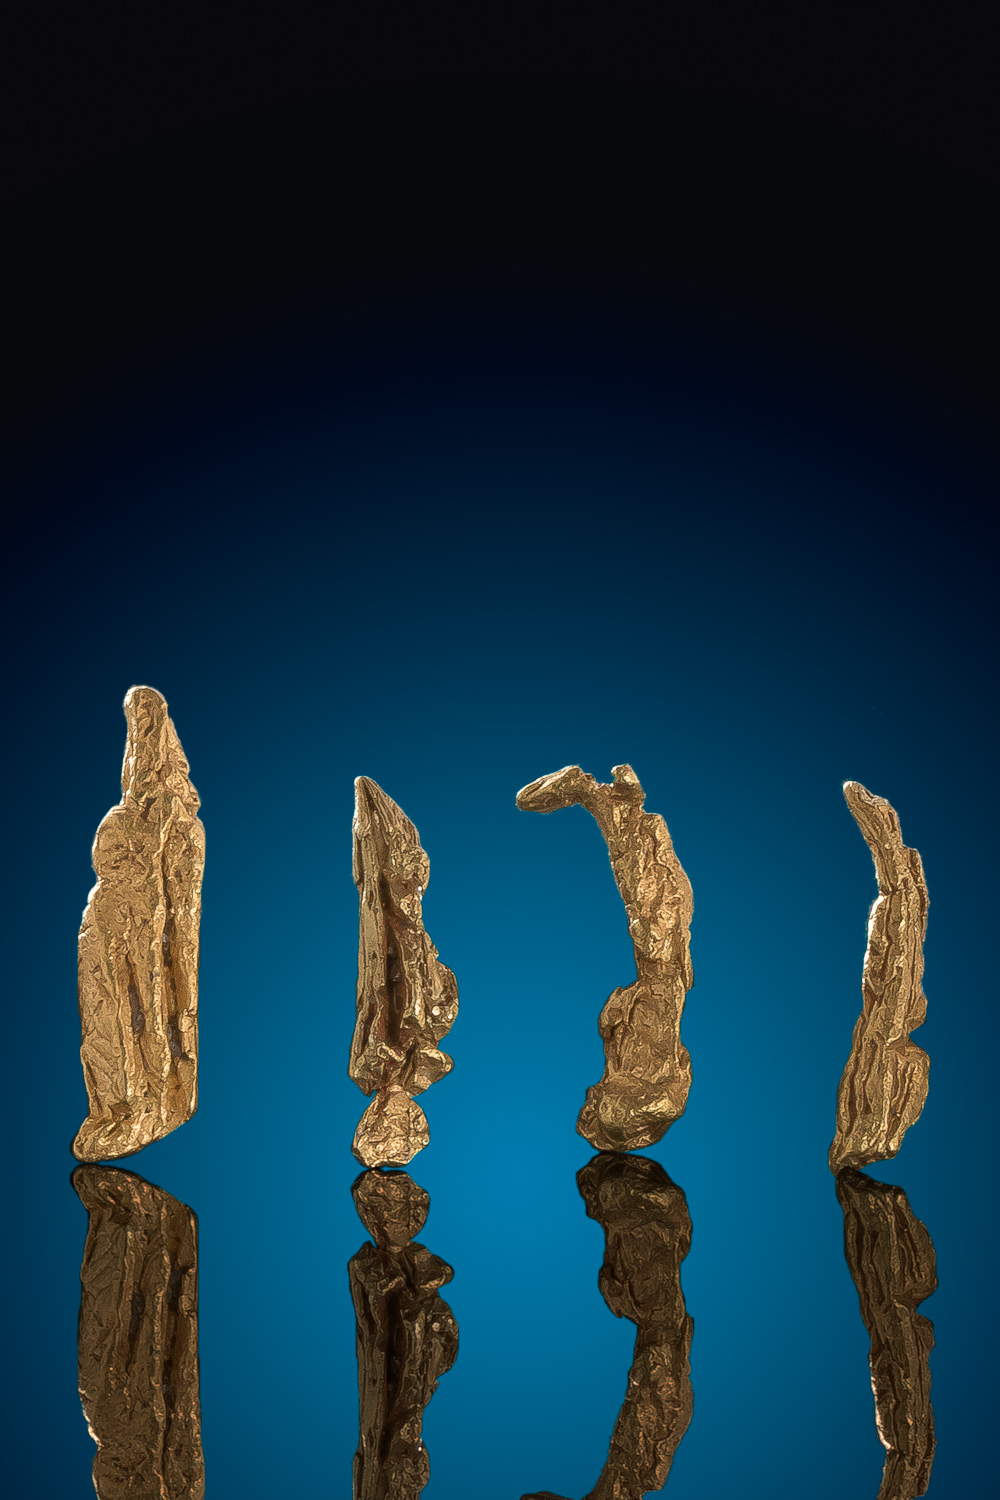 Four Wire Gold Nugget Specimens - Bradshaw Mountains, Arizona